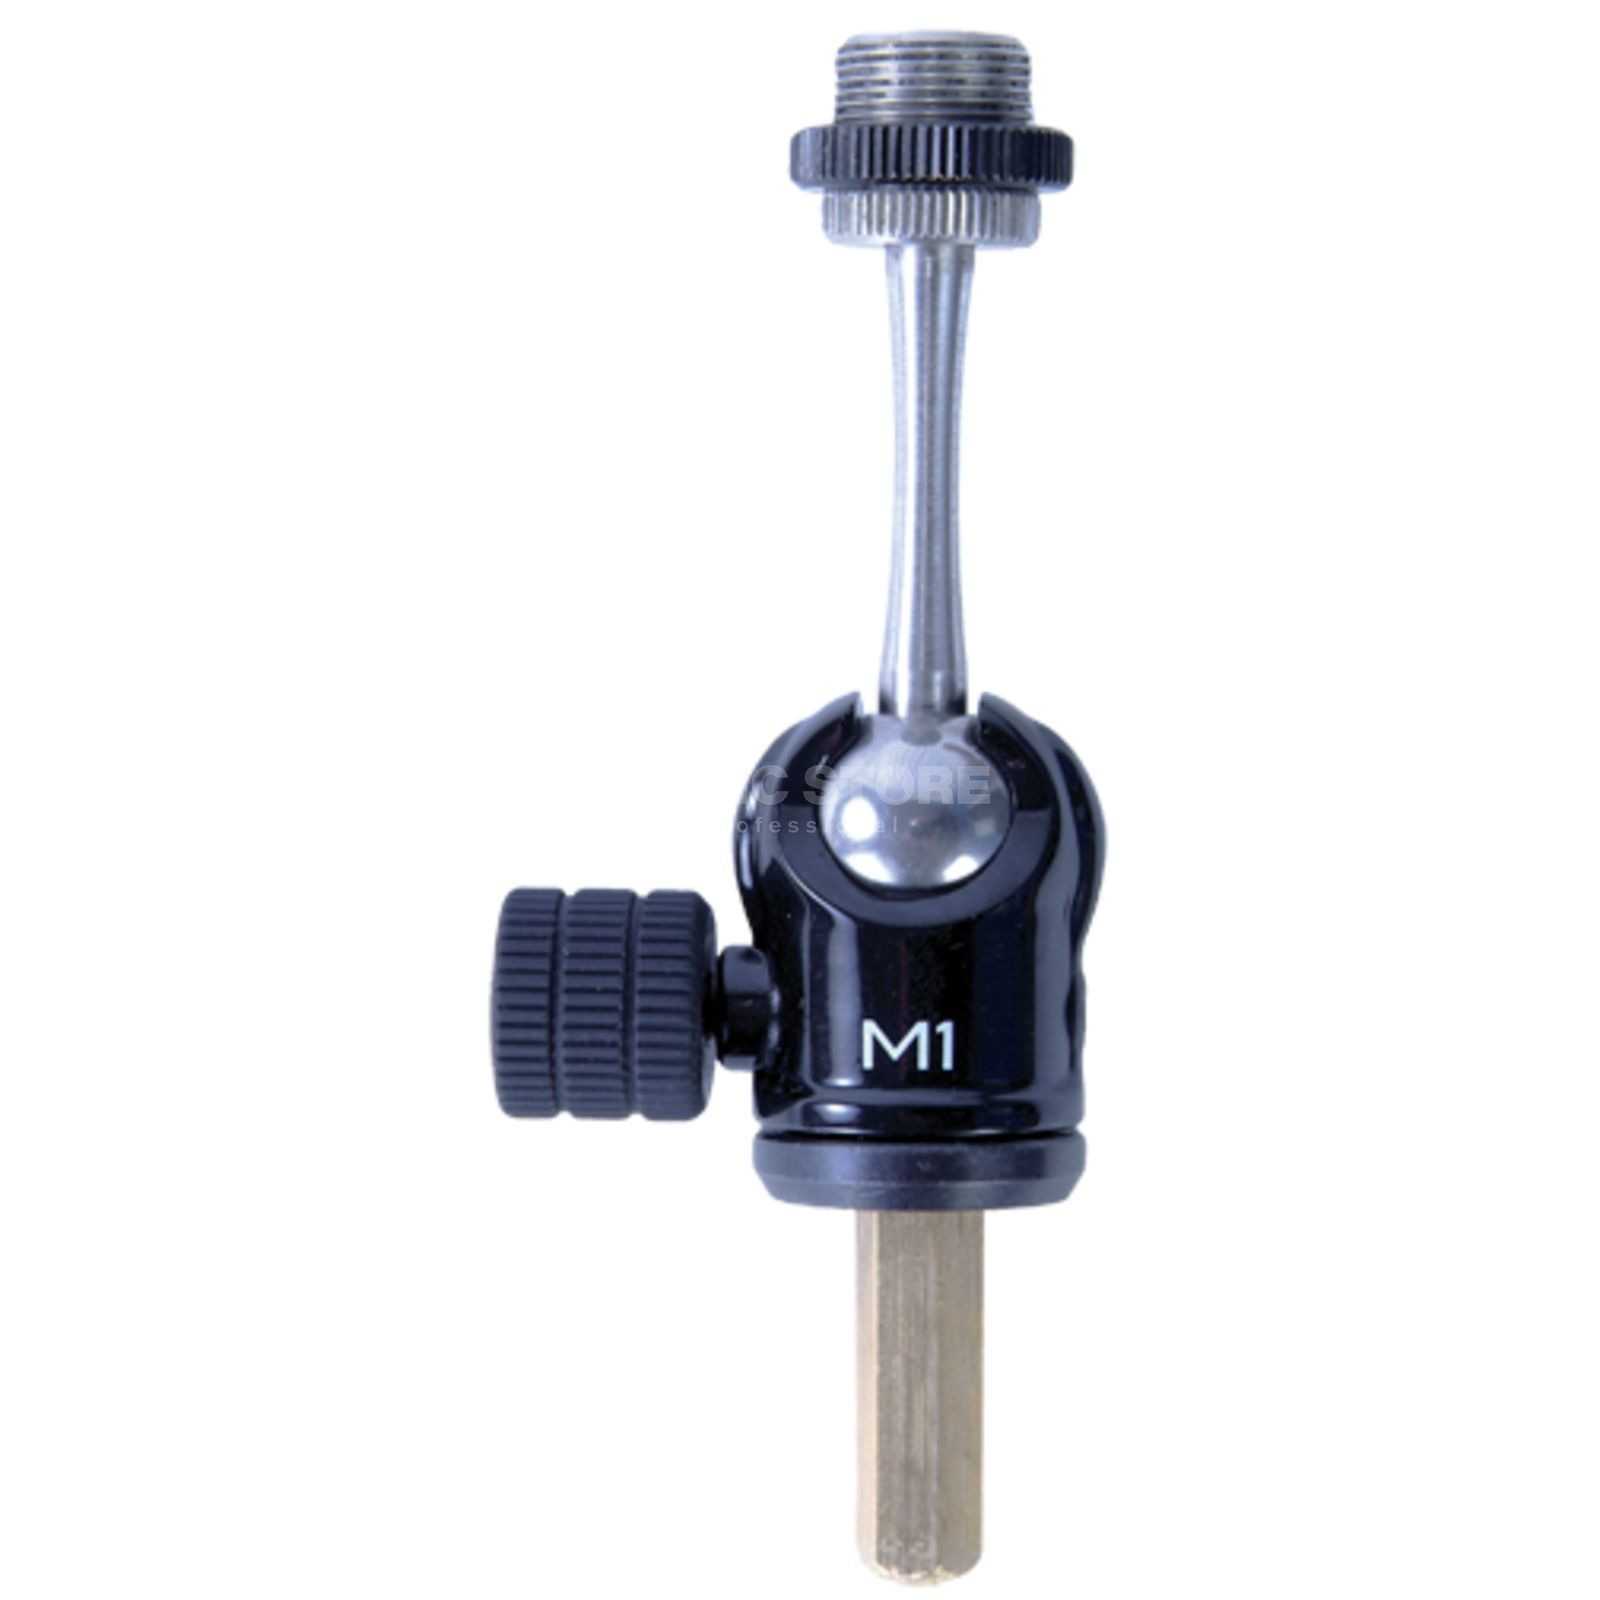 Triad-Orbit M 1MICRO Orbital Mic Adaptor - Long Stem Produktbillede